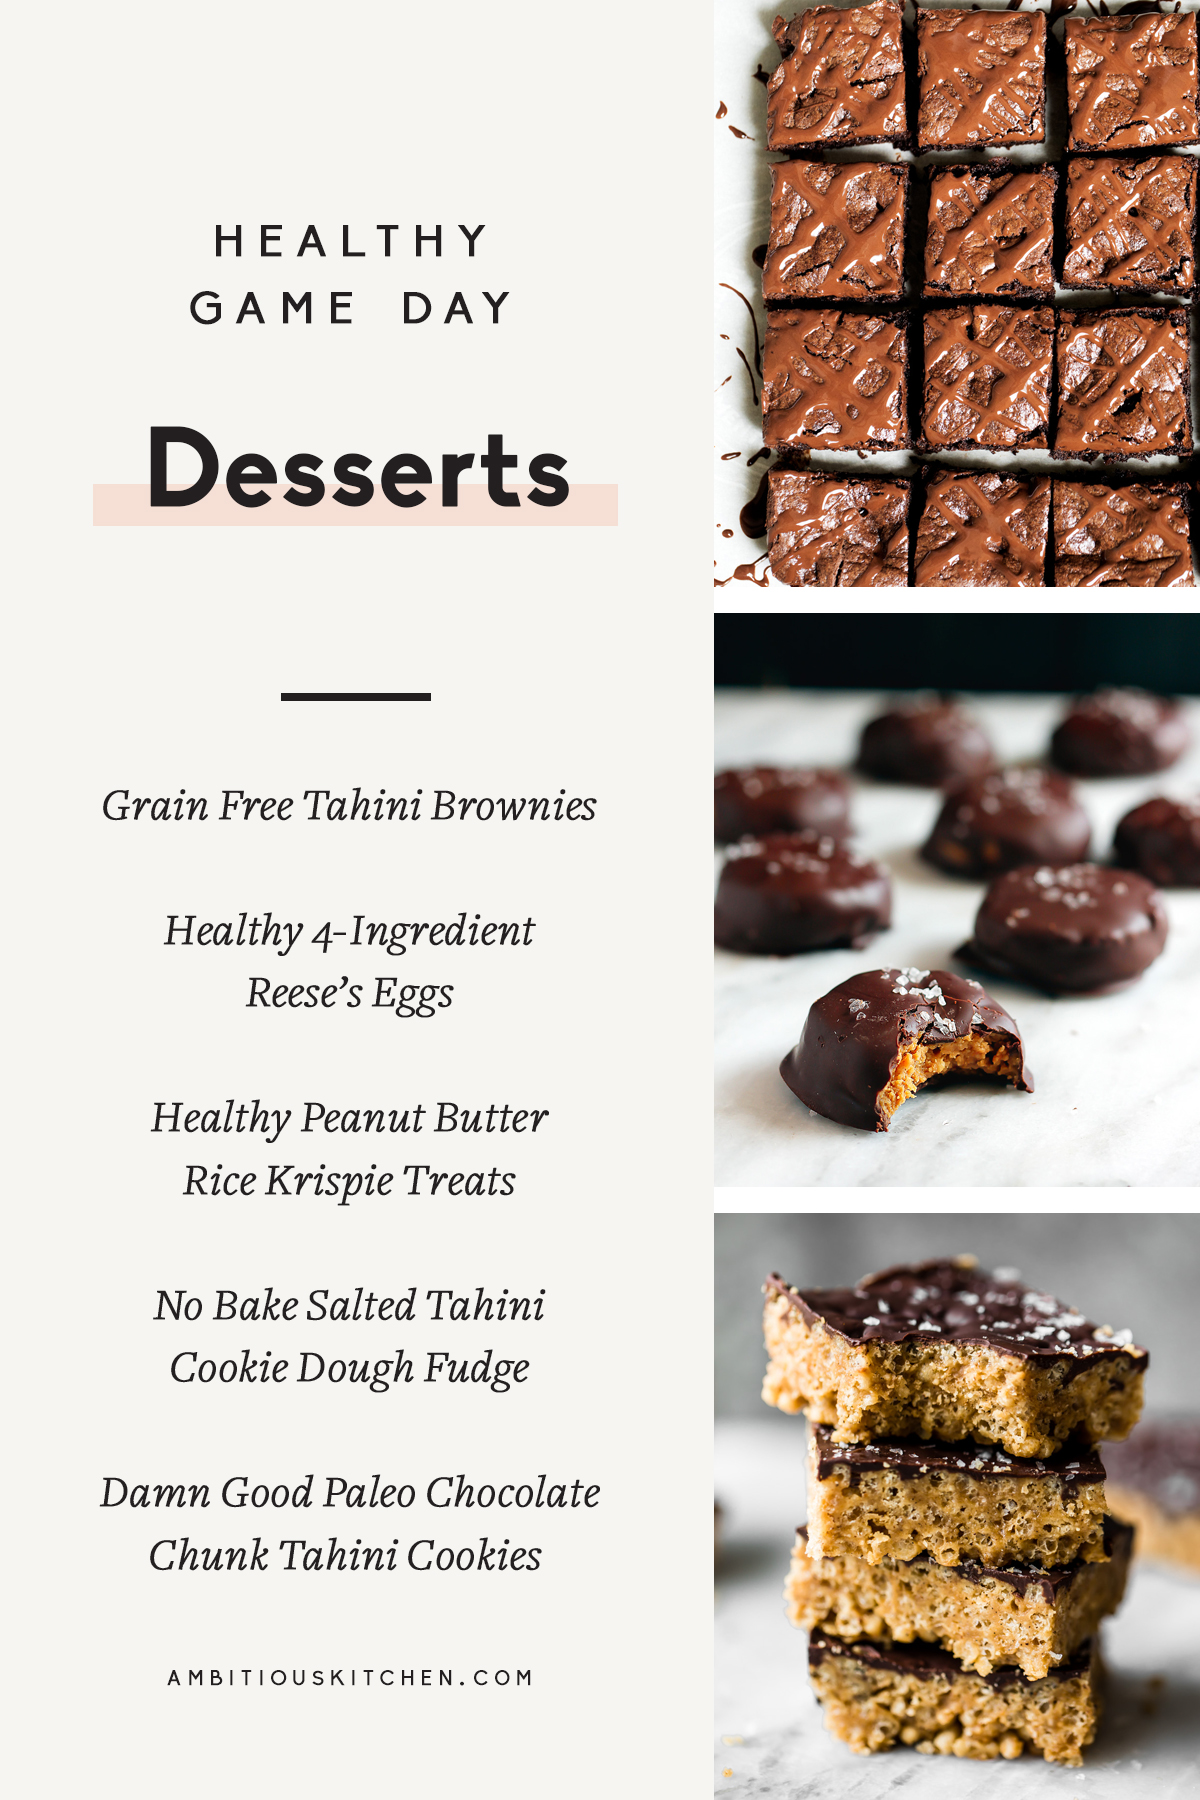 The best healthy game day recipes to make for a crowd. Everyone will love these fun appetizers, delicious mains, and incredible desserts. Double or triple any of the recipes for a big group!